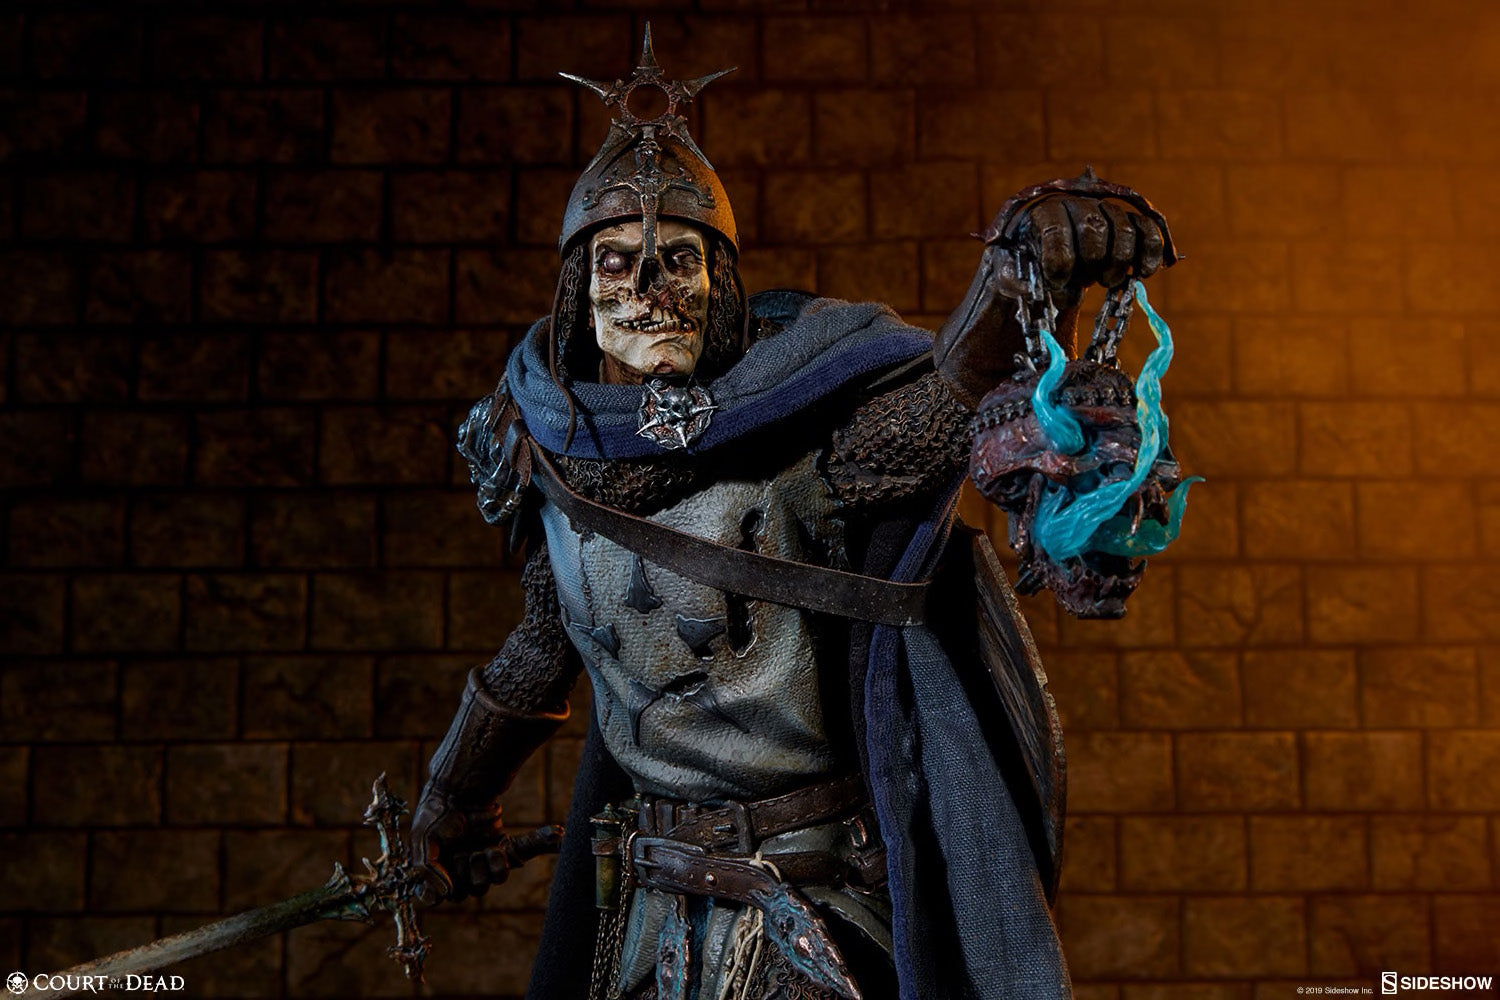 Sideshow Collectibles - Premium Format Figure - Court of the Dead - Relic Ravlatch: Paladin of the Dead